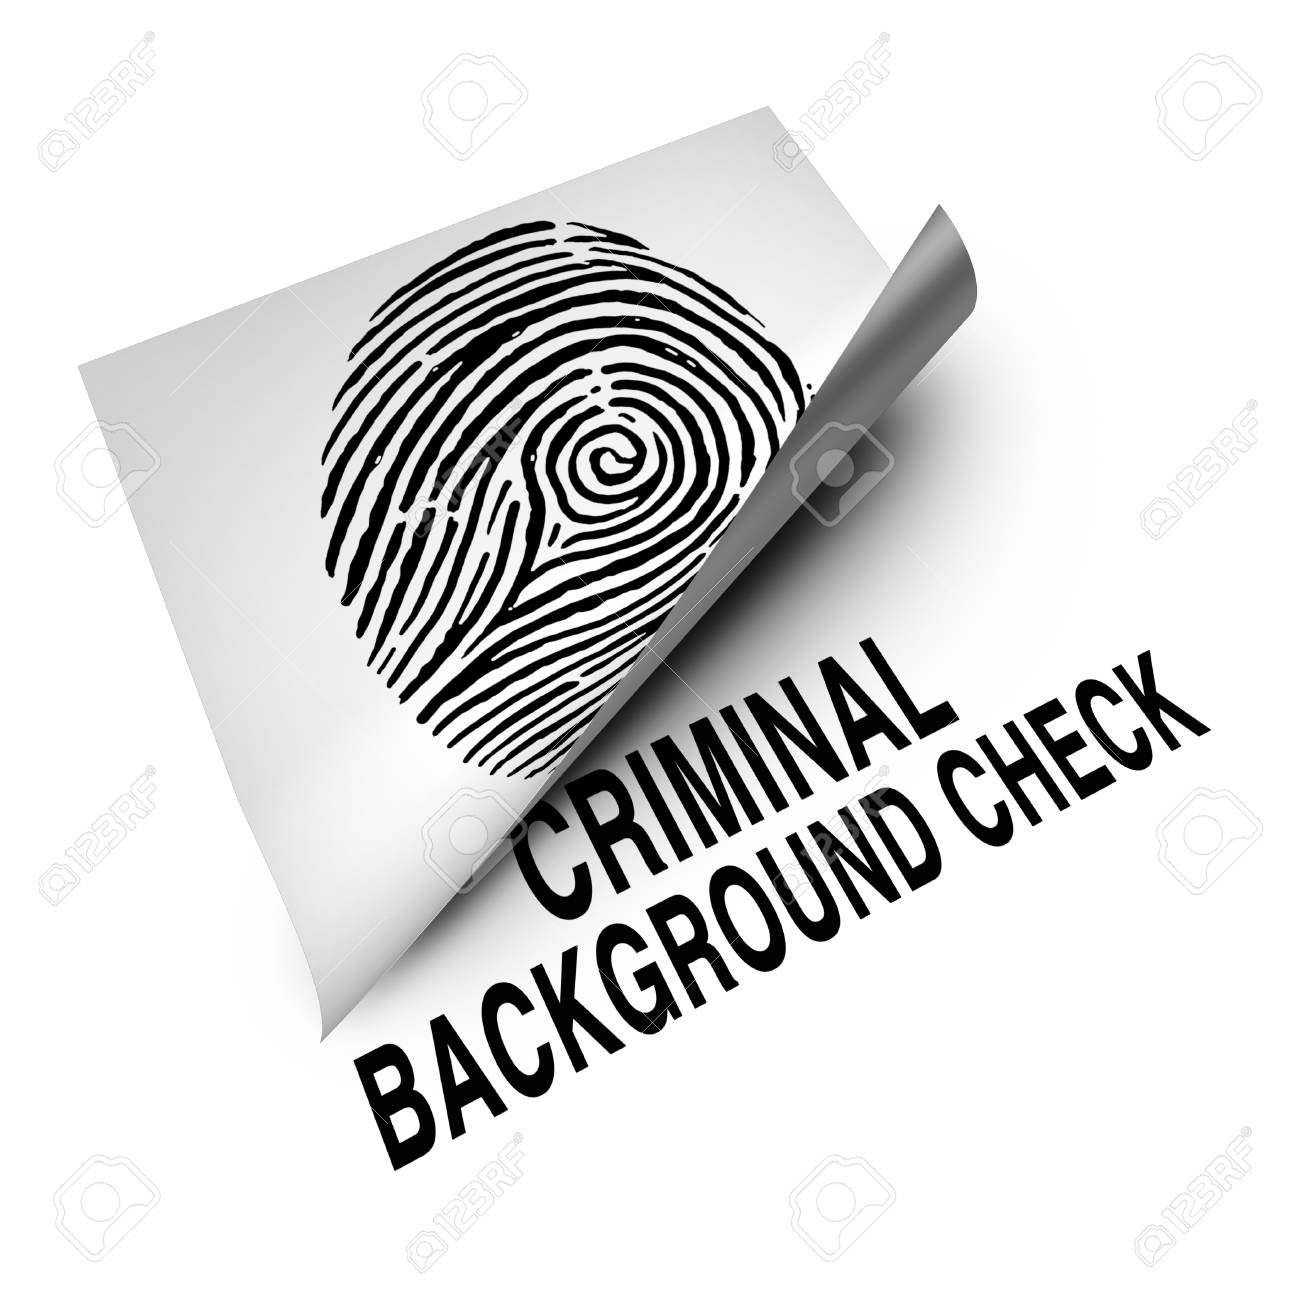 Criminal History Check Free >> Criminal Background Check Concept And Employment Screening Of